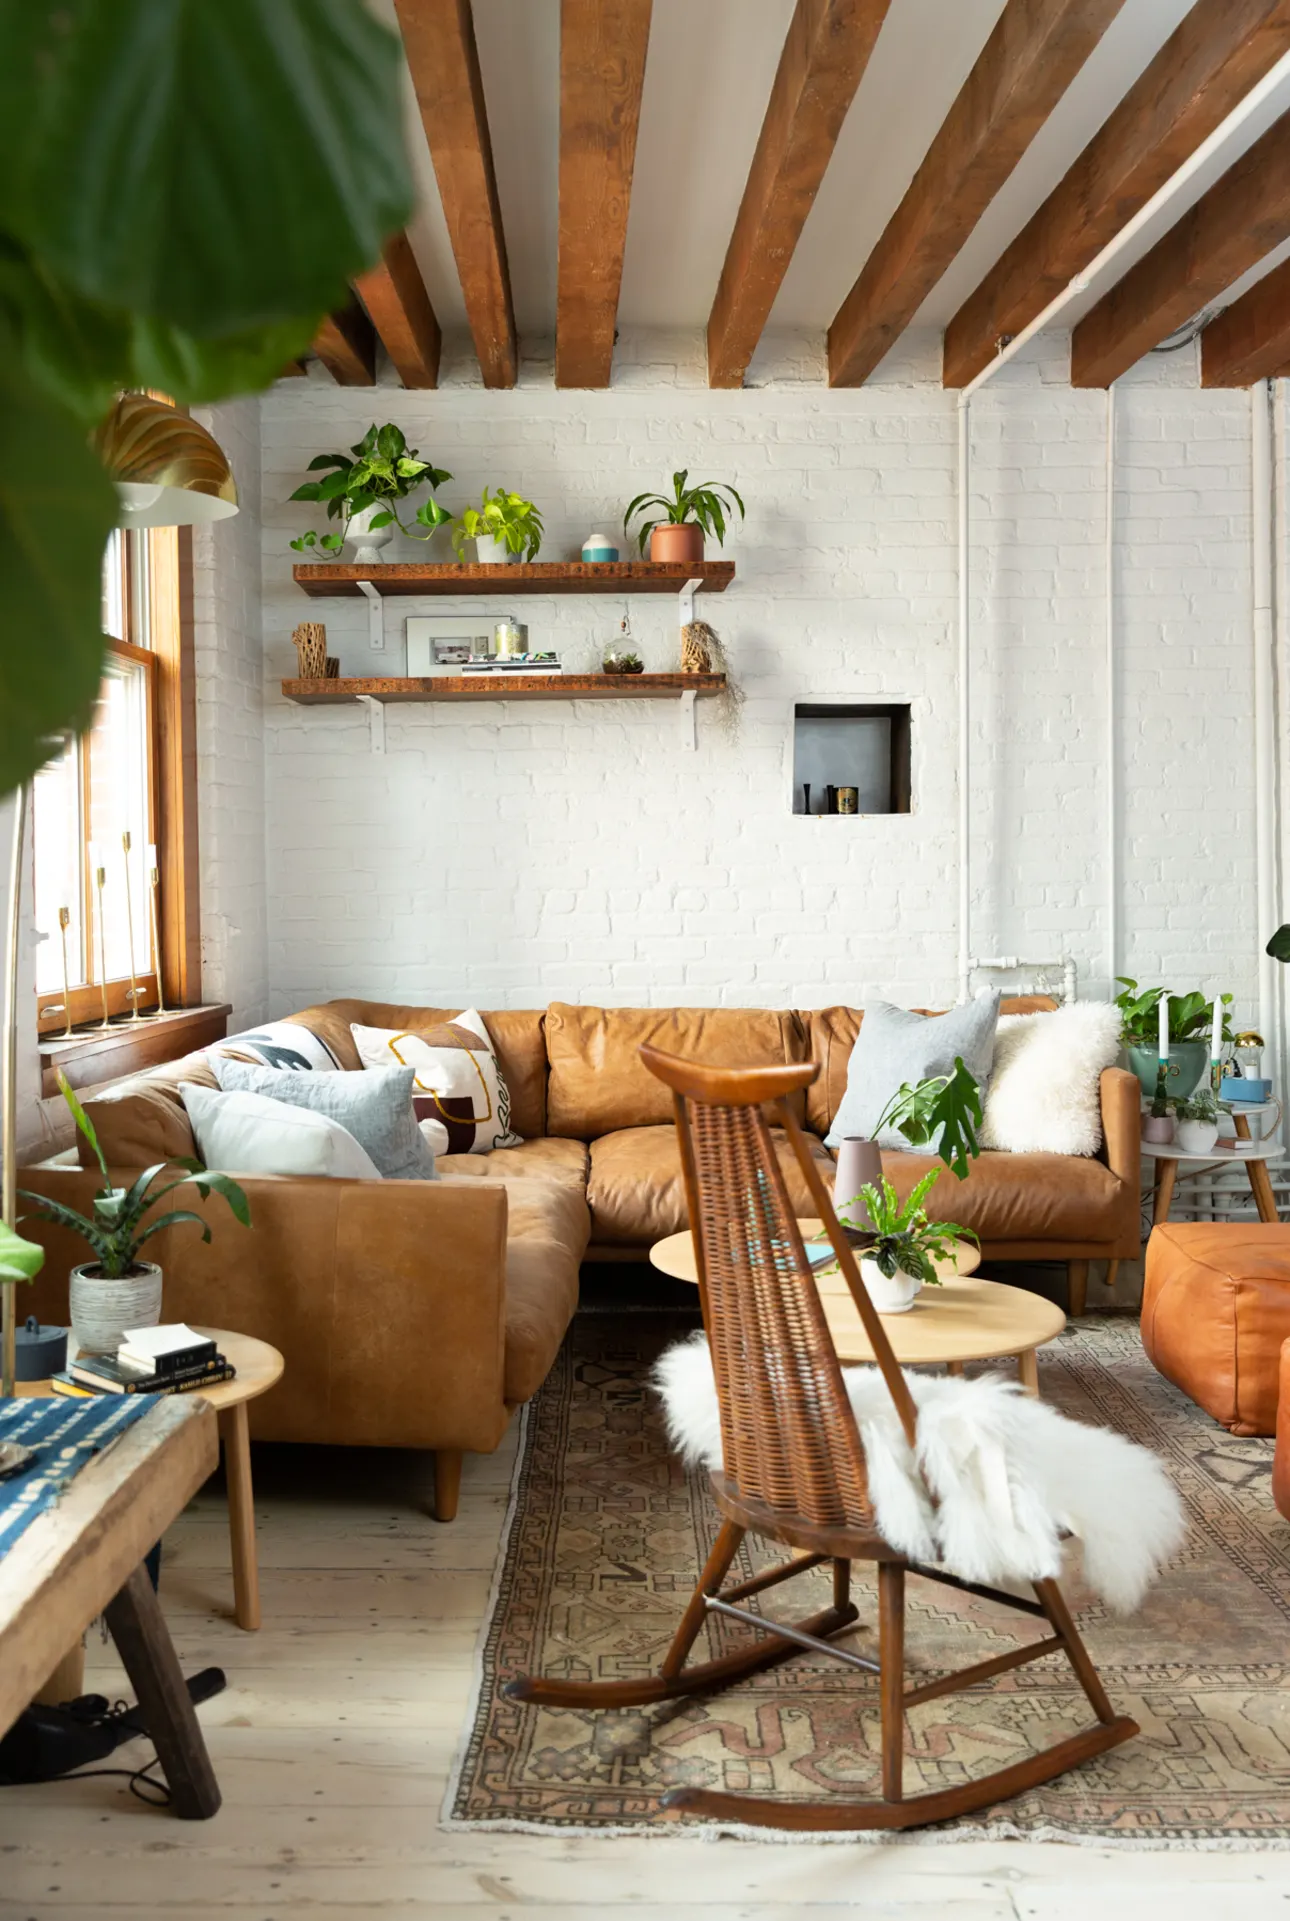 The Nordroom - A Scandinavian-Style Loft in New York